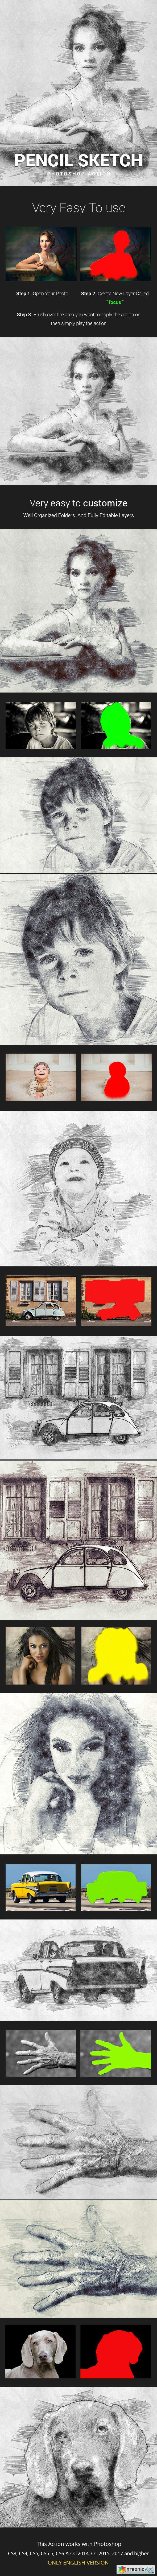 Pencil Sketch Photoshop Action Photo Effects